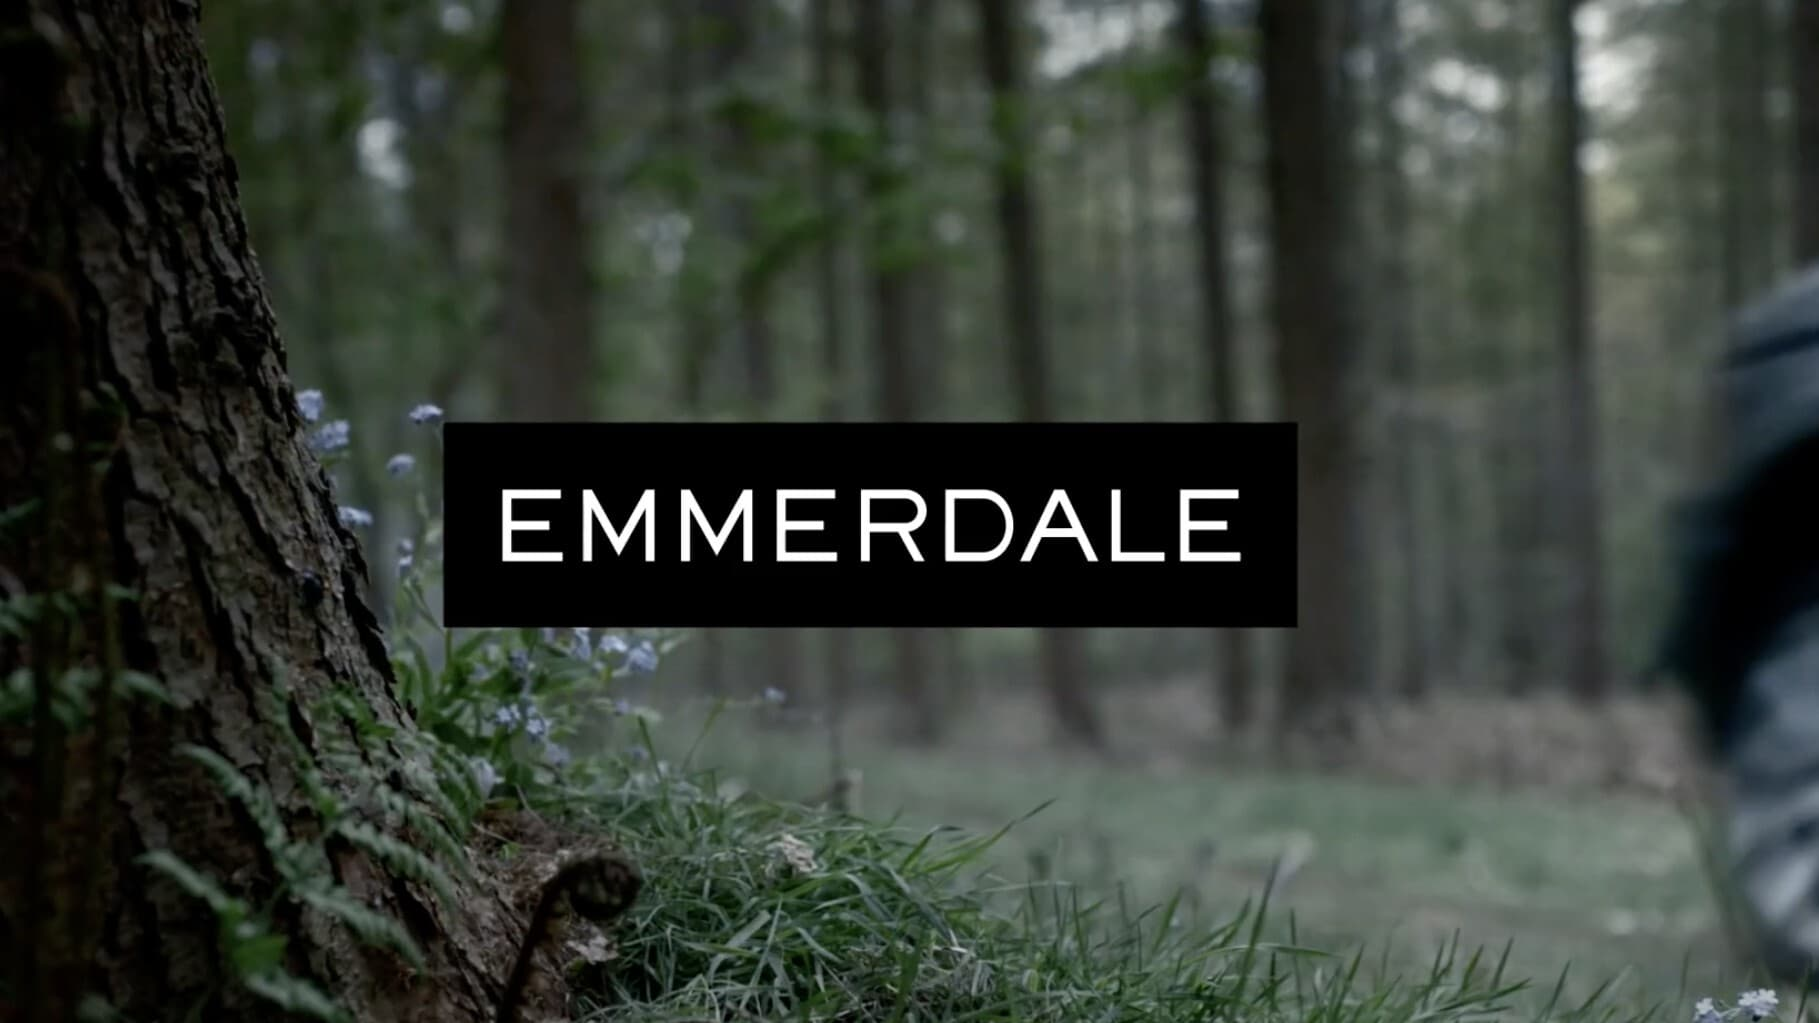 Emmerdale - Season 50 Episode 93 : Thursday 22 April 2021 (Part 2)